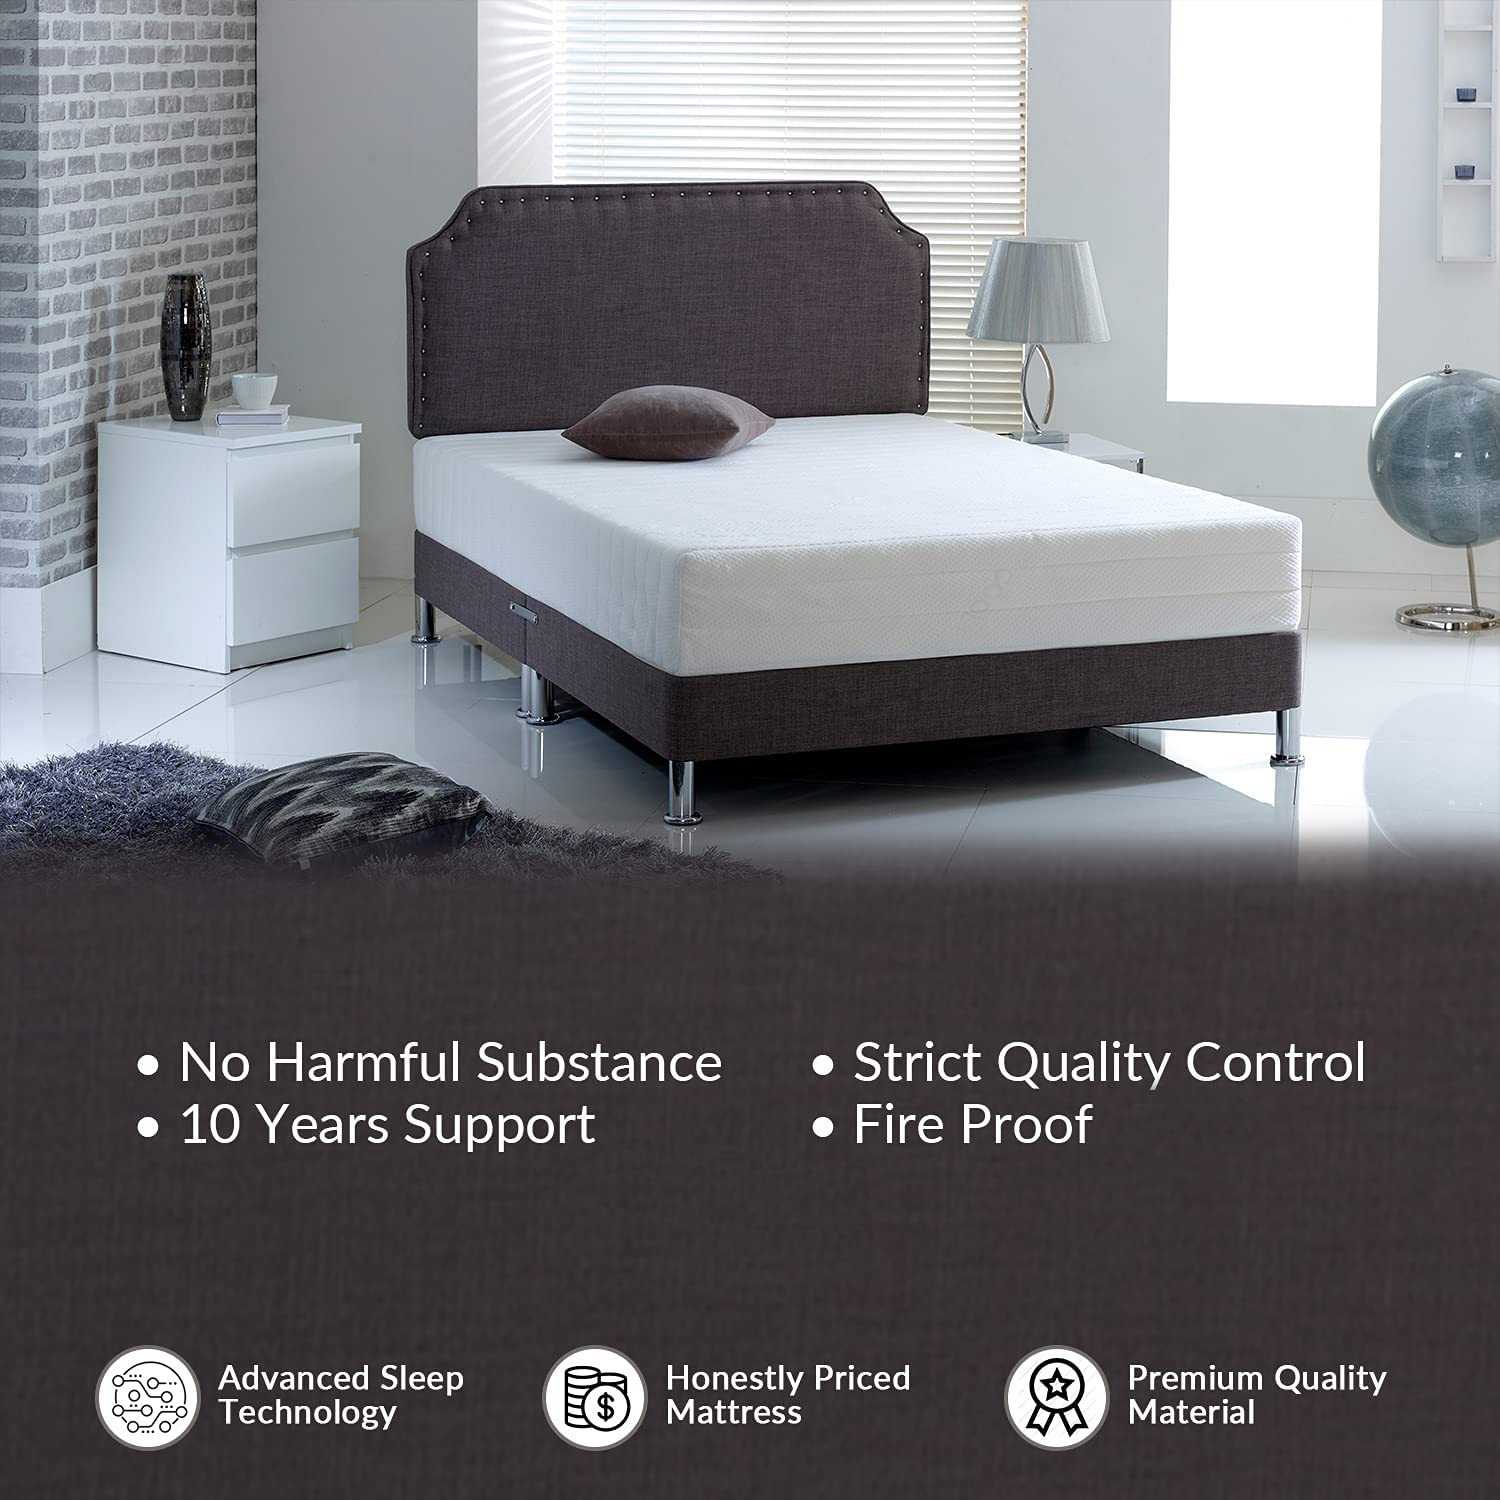 Visco Therapy King Size Mattresses 15 cm High Mattresses with Cool Cleanable Cover KingSize Mattress with Size of 5ft 150cm x 200cm